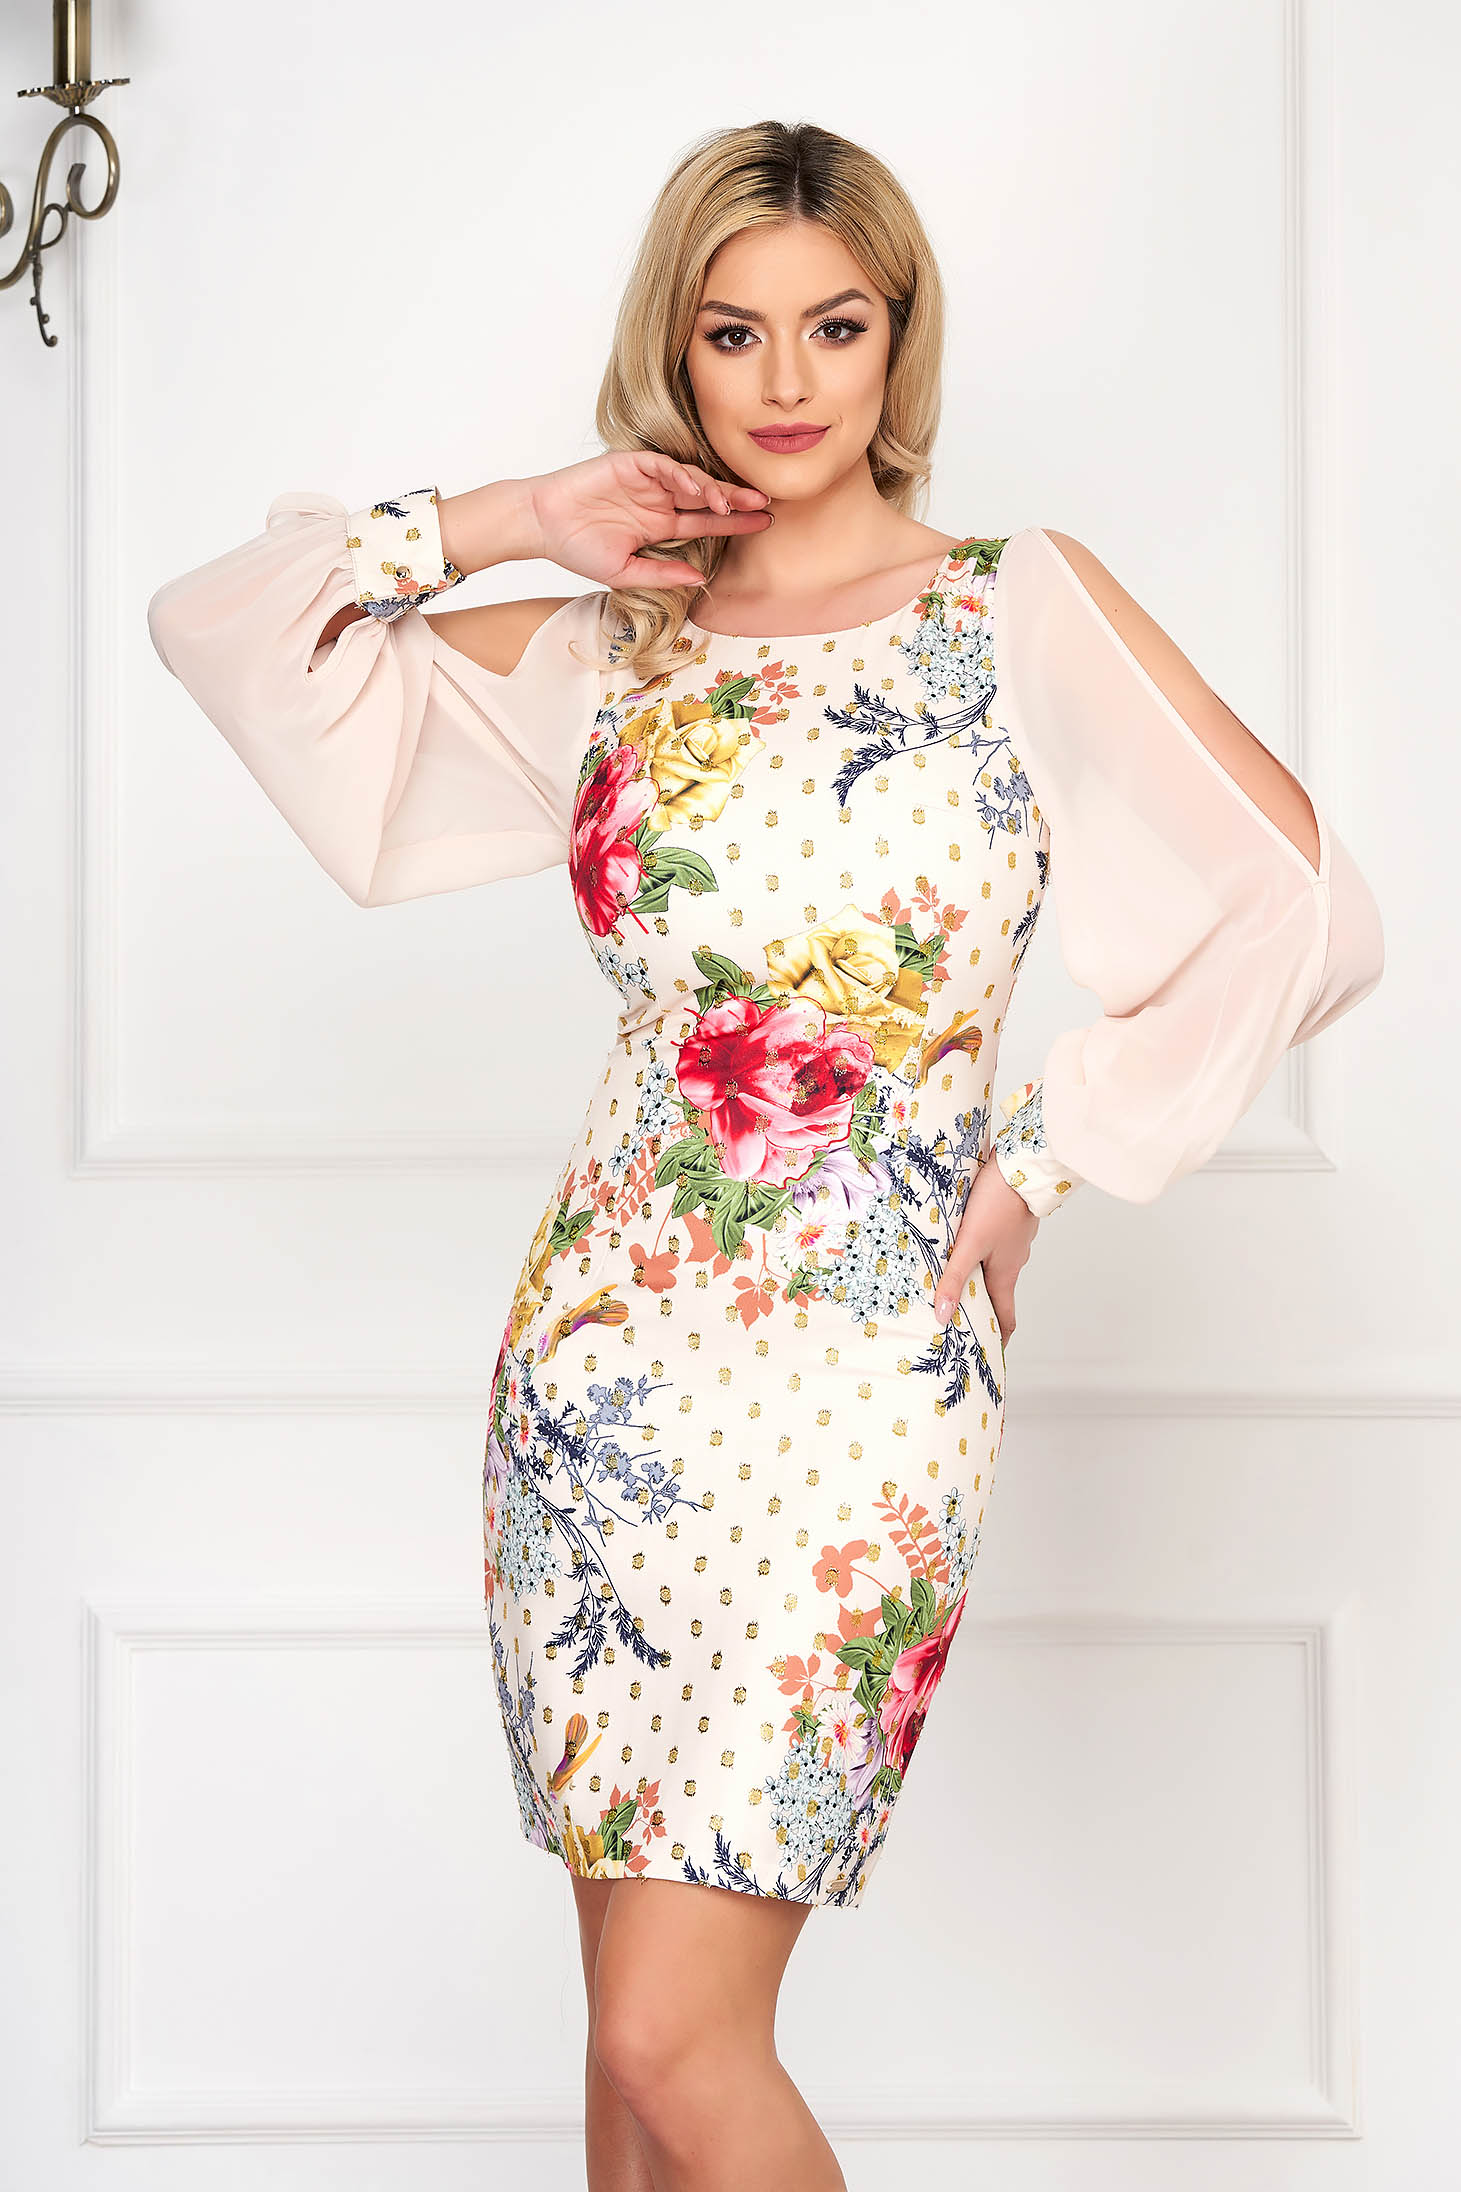 Cream dress elegant short cut pencil with veil sleeves with floral print